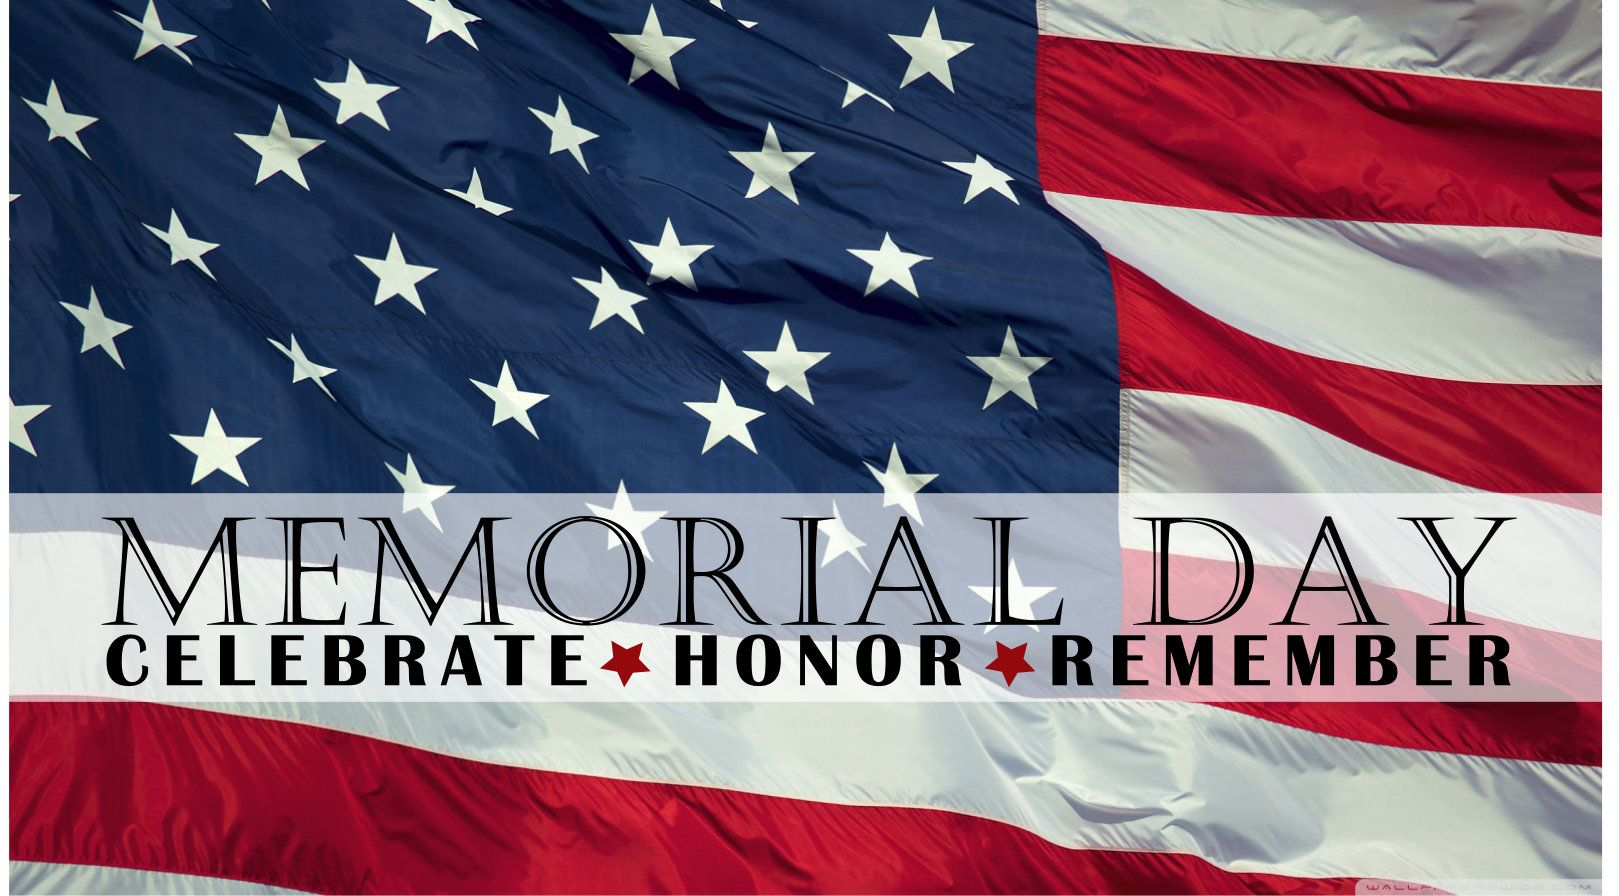 55 Memorial Day Desktop Wallpaper Free On Wallpapersafari